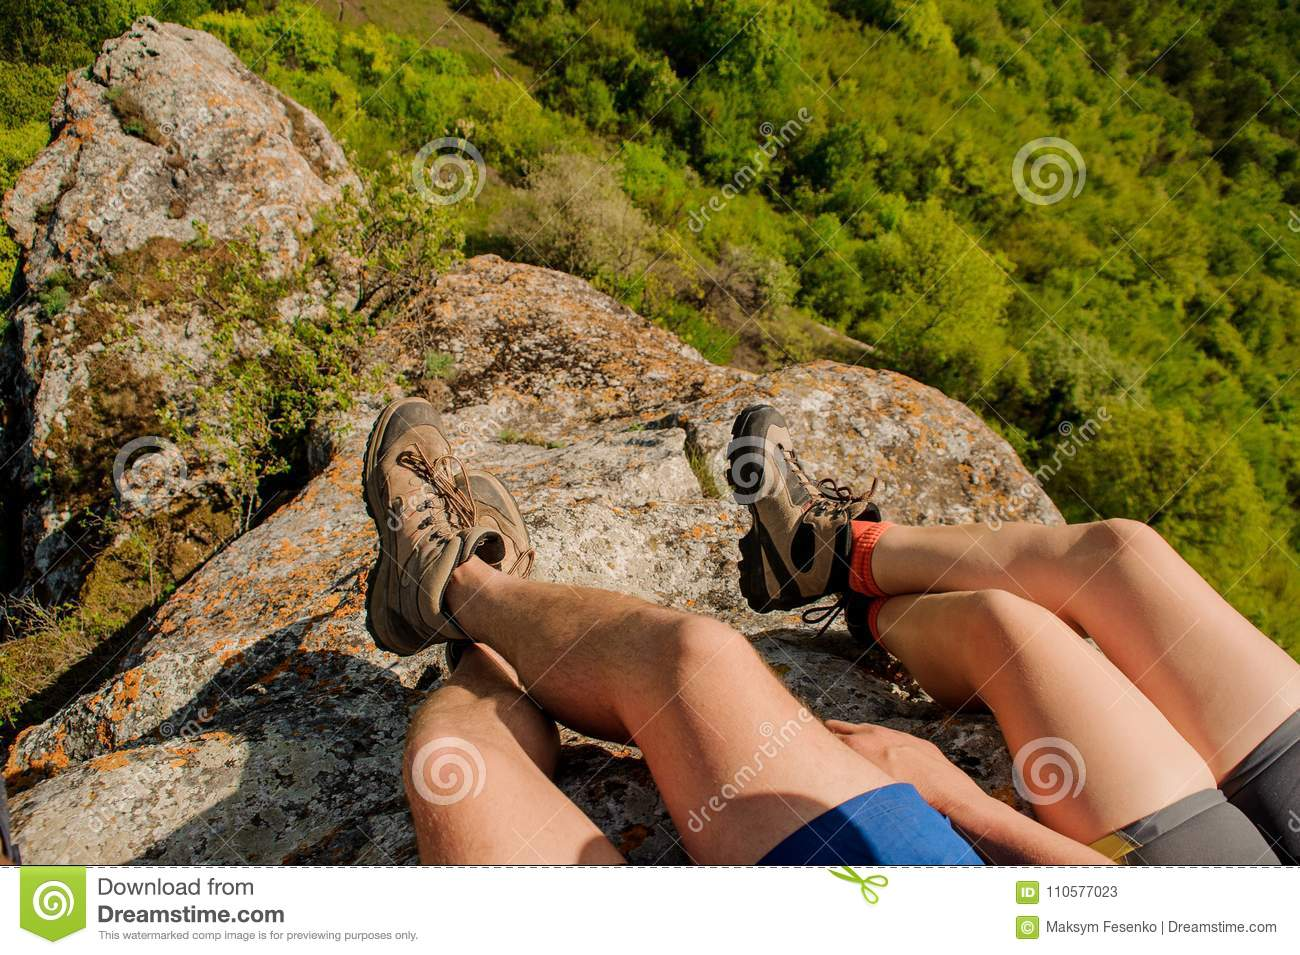 Guy and a girl in sneakers sit on a rocky mountain, dangling their legs down